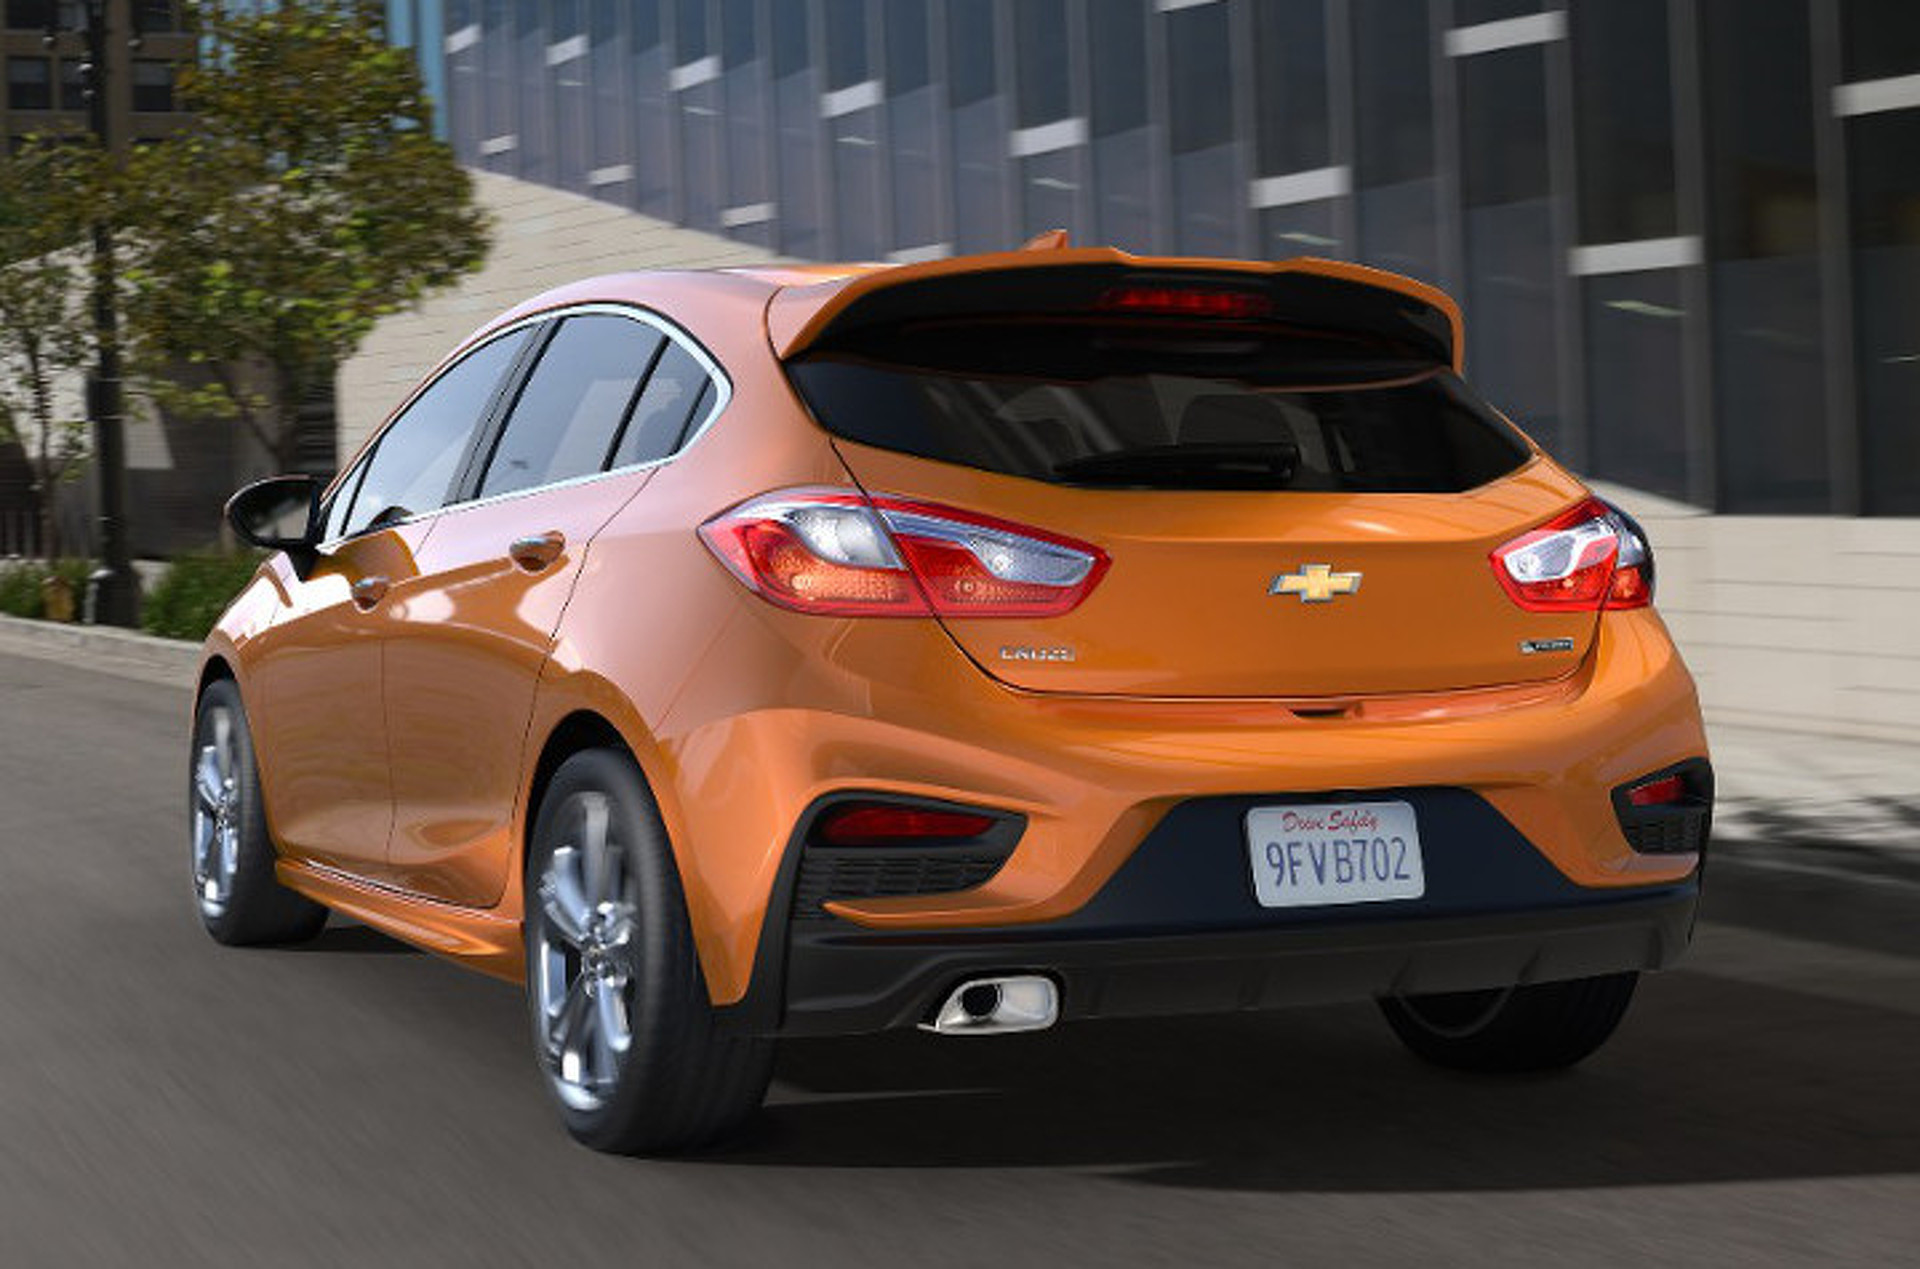 2017 Chevrolet Cruze Hatchback: 7 Things You Need to Know